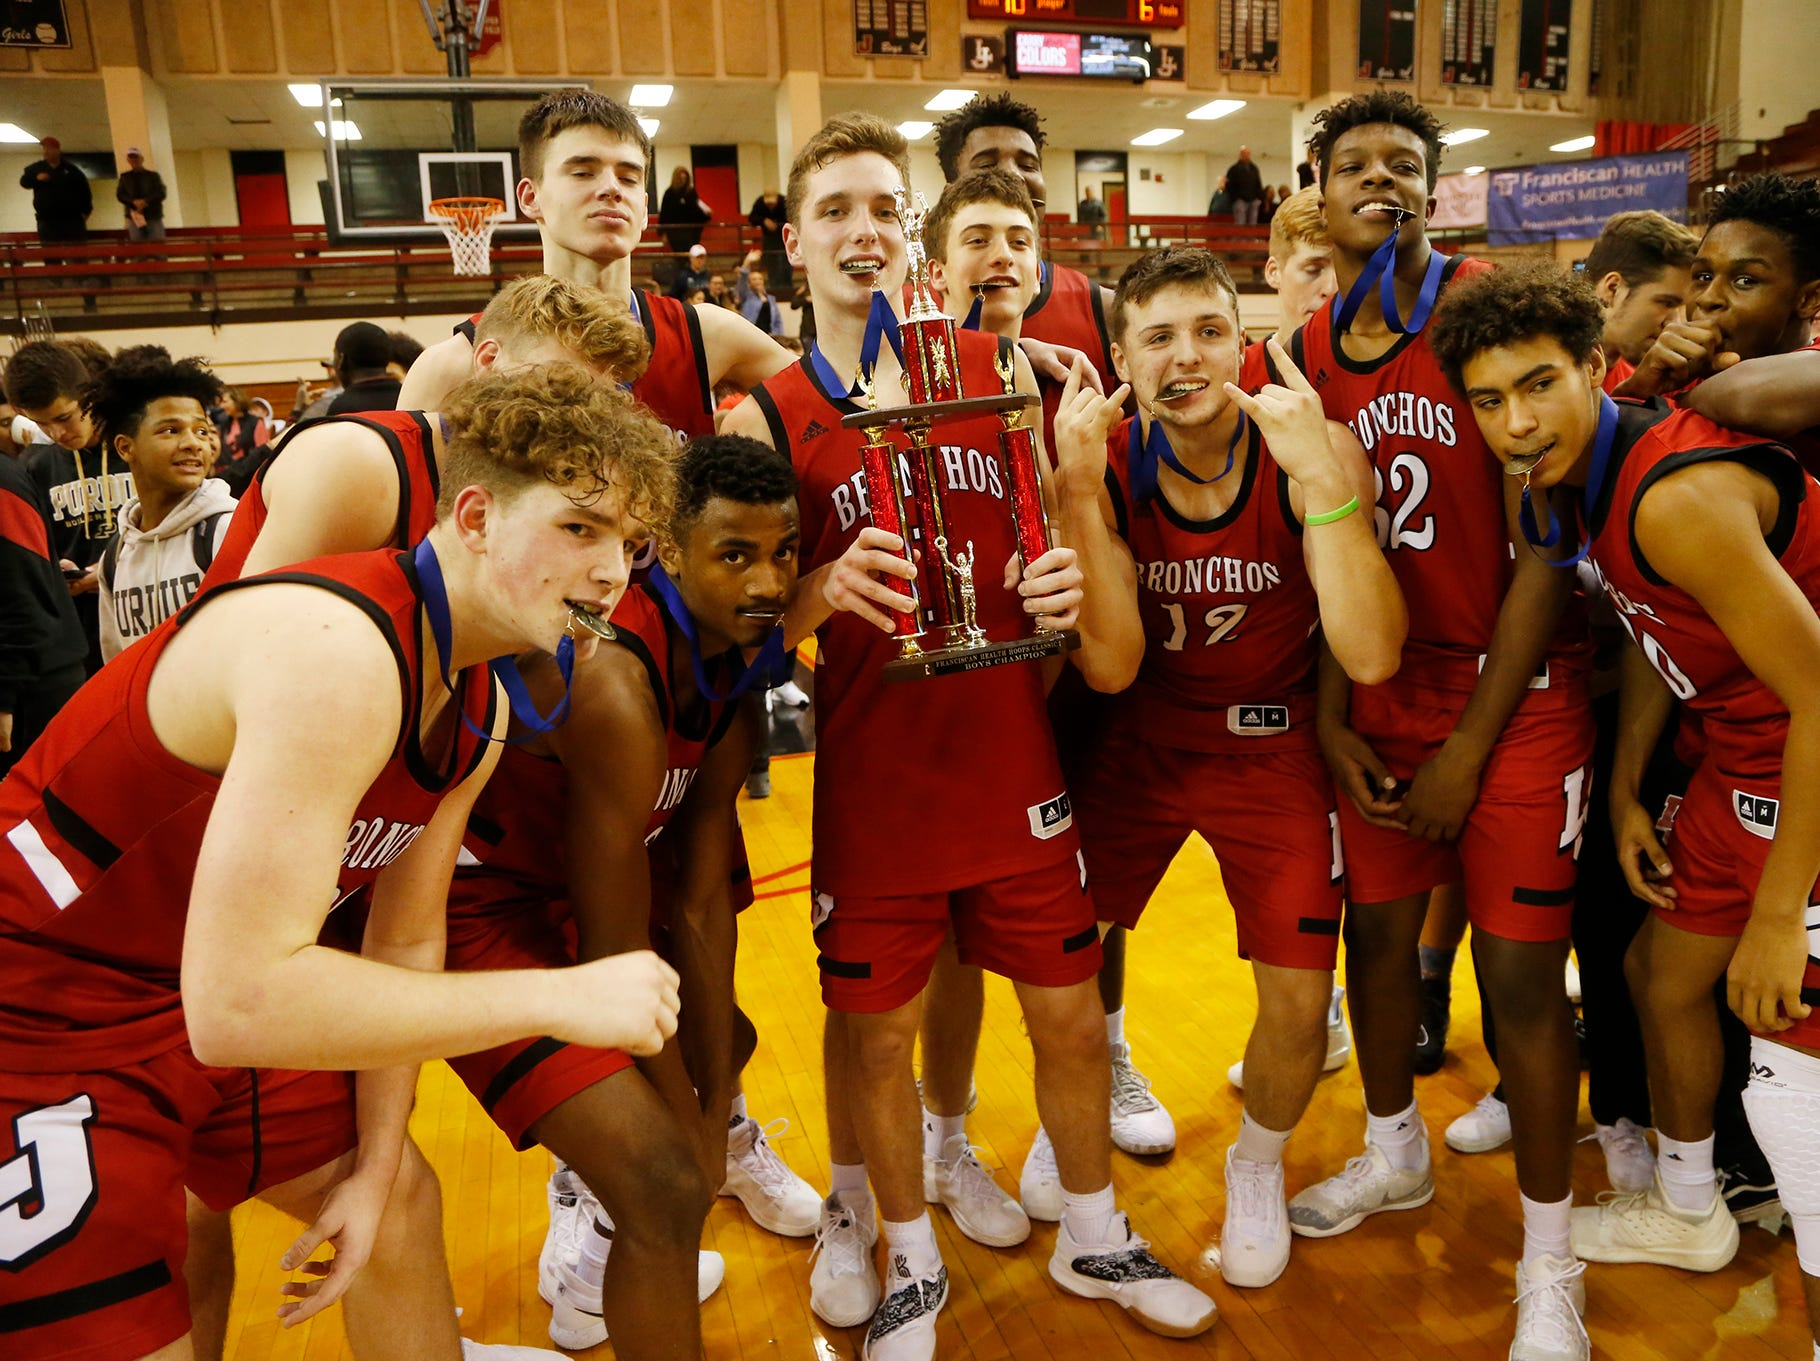 Lafayette Jeff players enjoy the spoils of victory after defeating Central Catholic 76-73 to win the championship of the Franciscan Health Hoops Classic Saturday, December 1, 2018, at Lafayette Jeff.